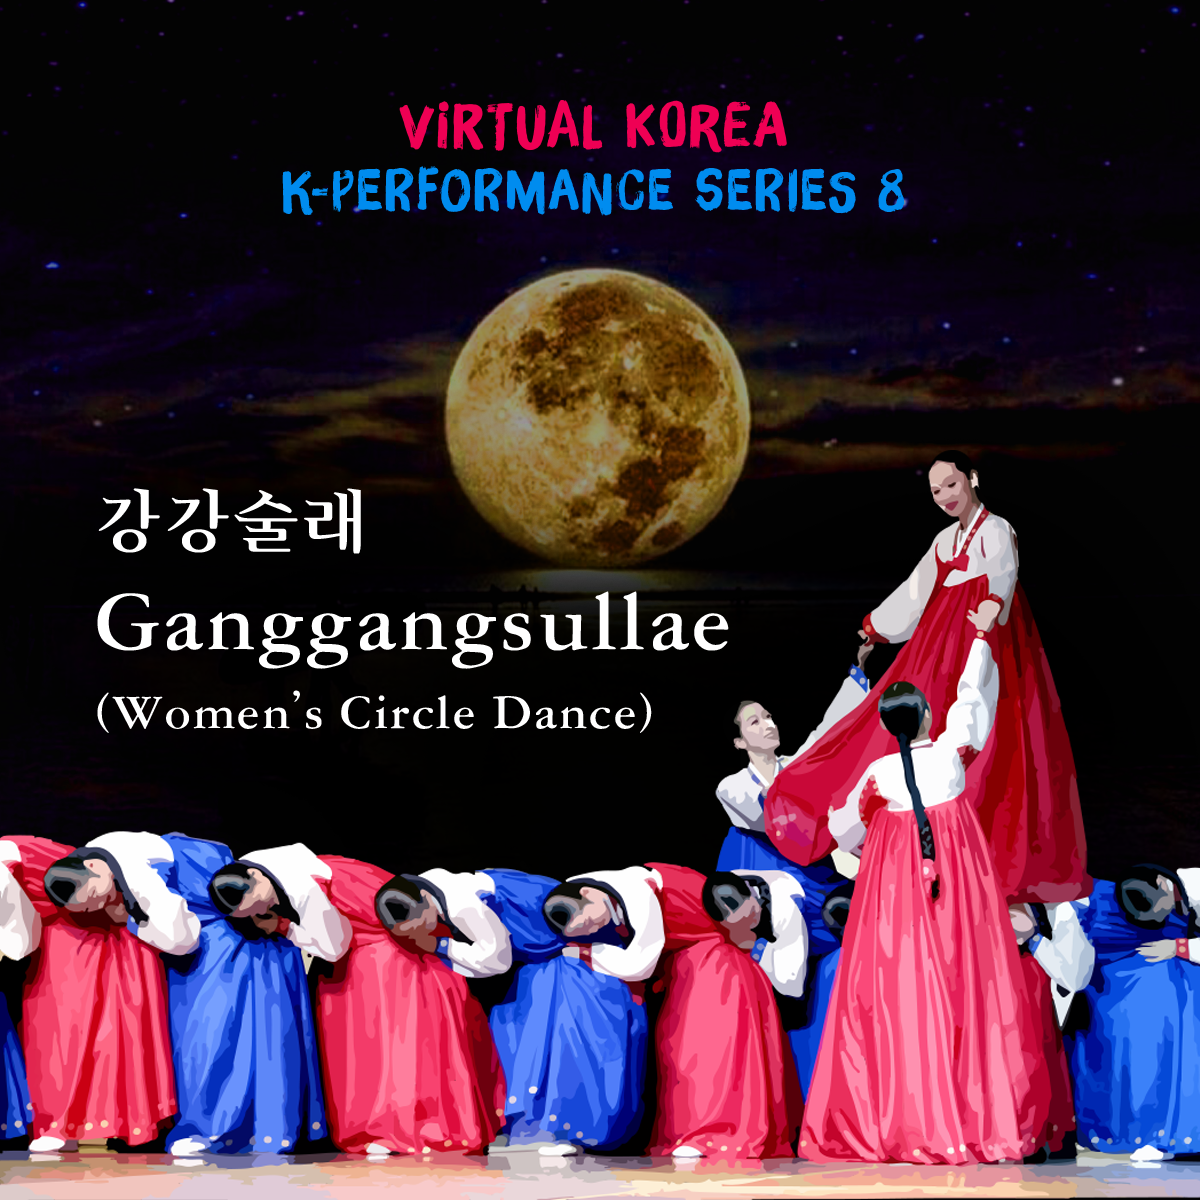 Ganggangsullae(Women's Circle Dance)